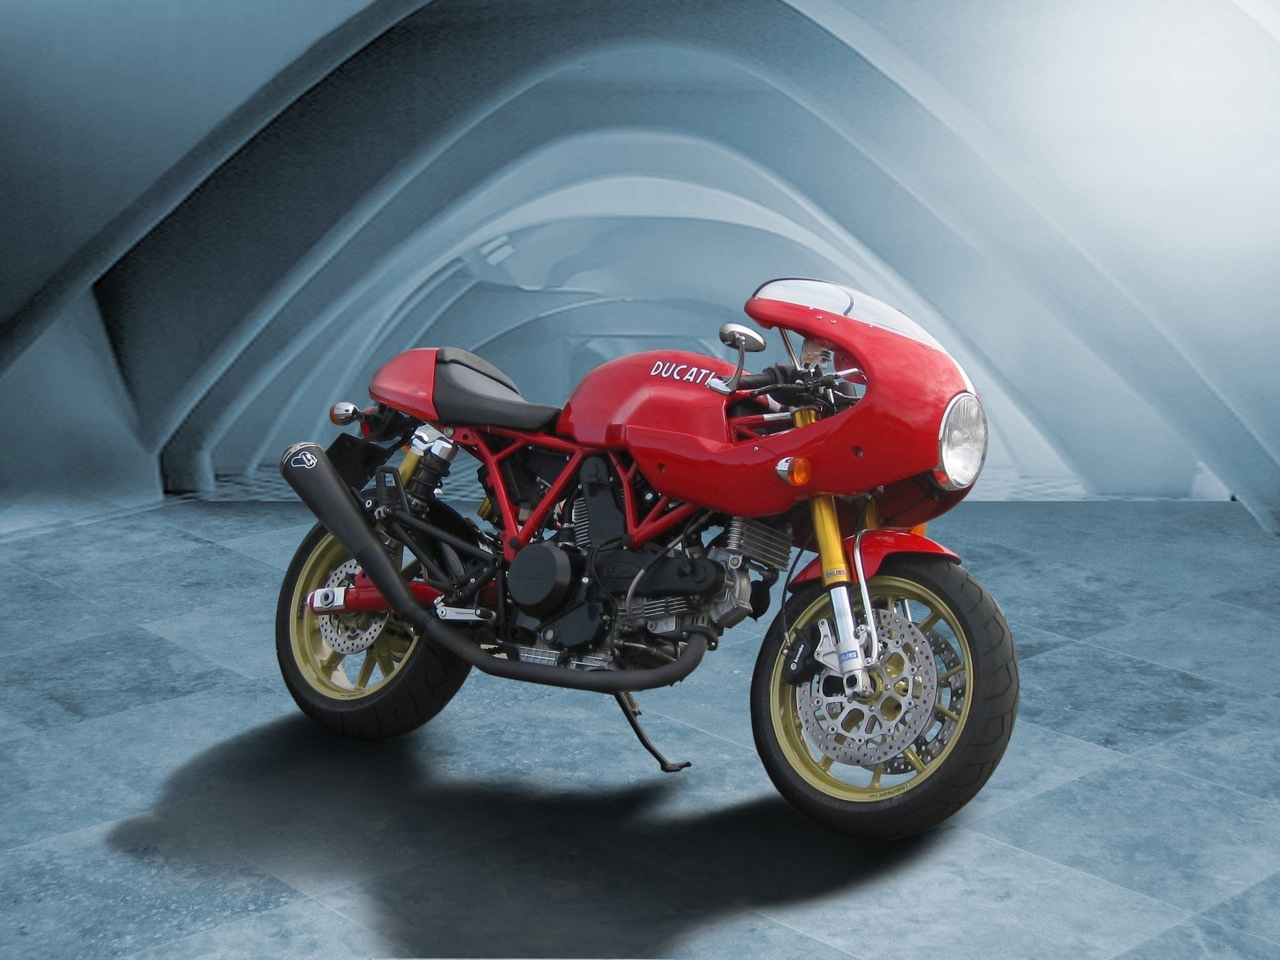 ducati exec summary See the company profile for porsche automhldg vzo (pah3de) including business summary, industry/sector information, number of employees, business summary, corporate governance, key executives.